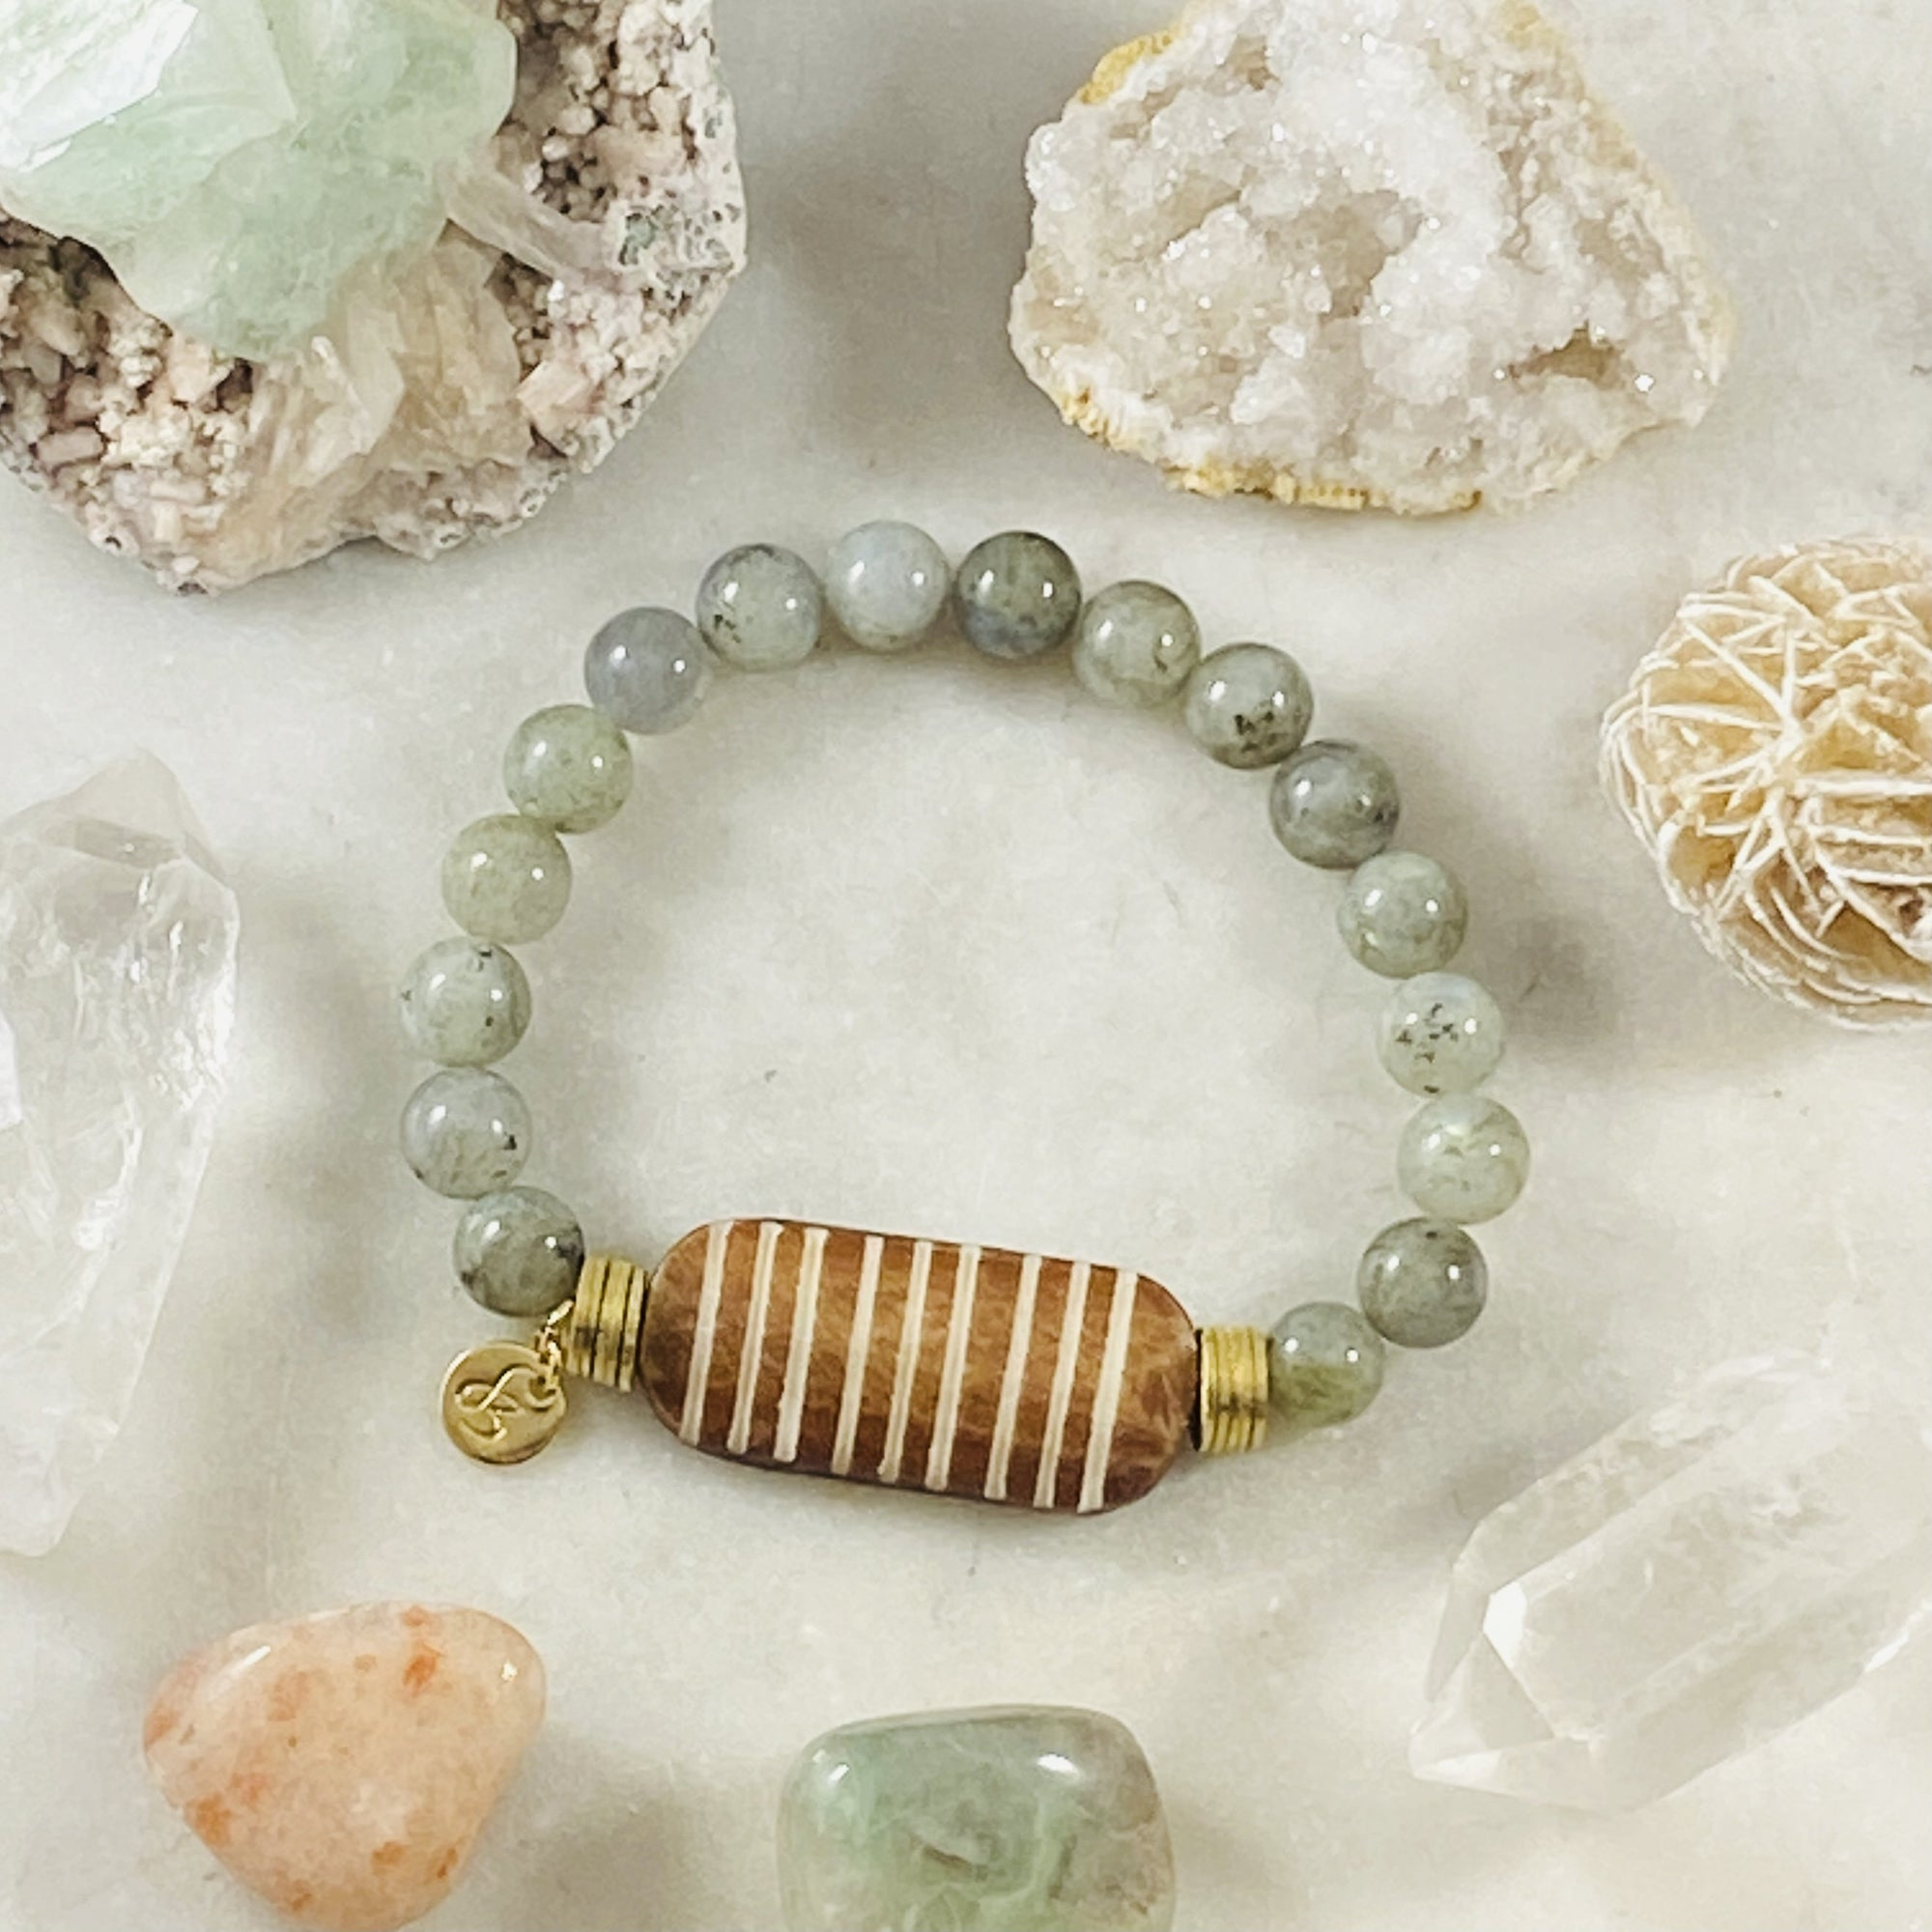 Aiyana stacking bracelet by Sarah Belle